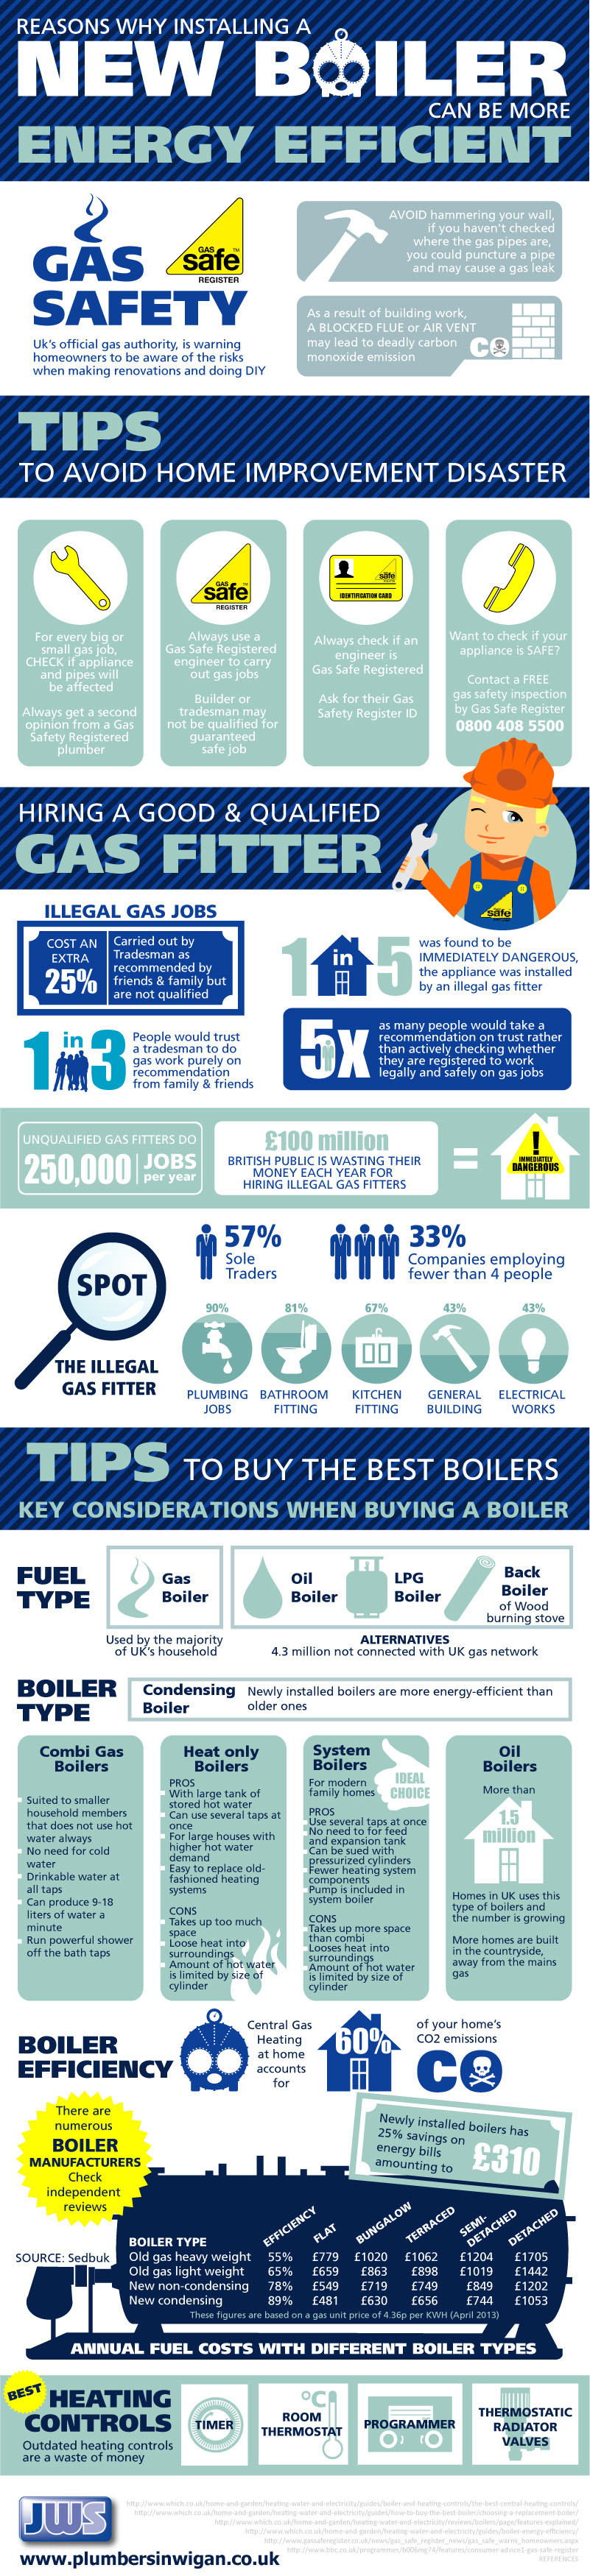 Reasons Why Installing a New Boiler can be More Energy Efficient ...